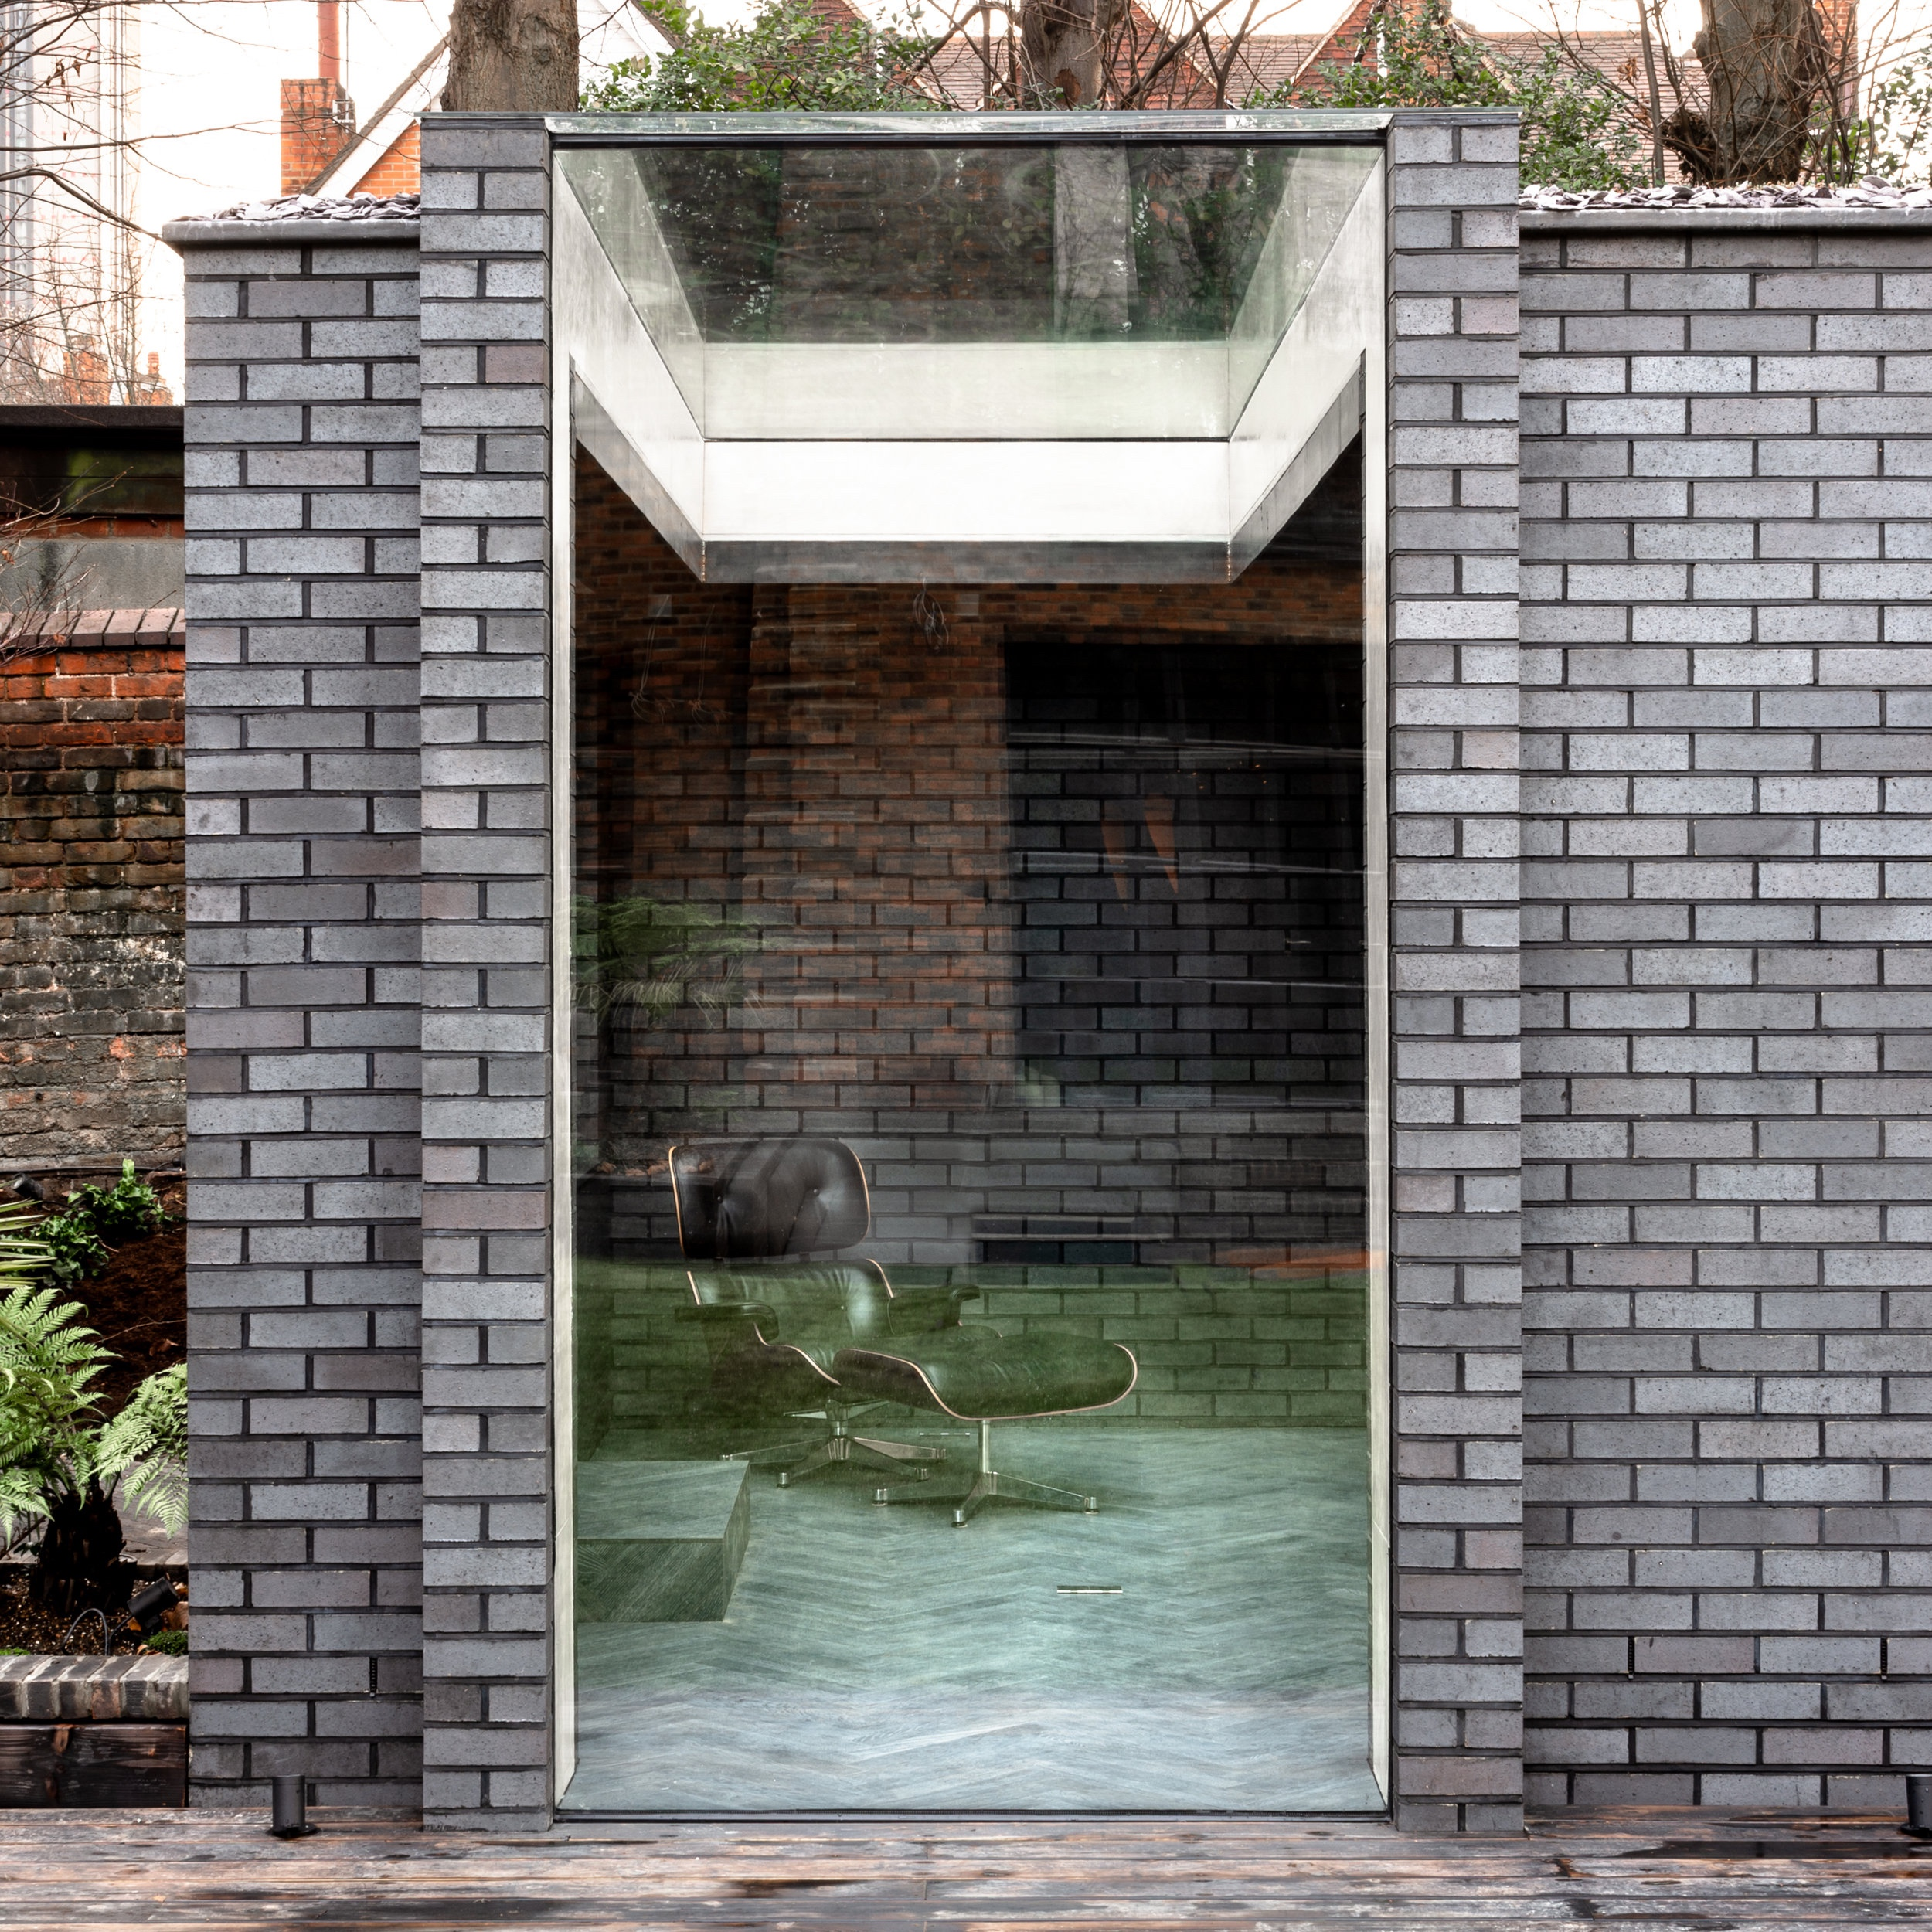 Yoga dojo   Designed within householder permitted development rights and within the wider context of the whole landscaping design, the Yoga Dojo is a standalone garden pavilion at the end of a planted walkway